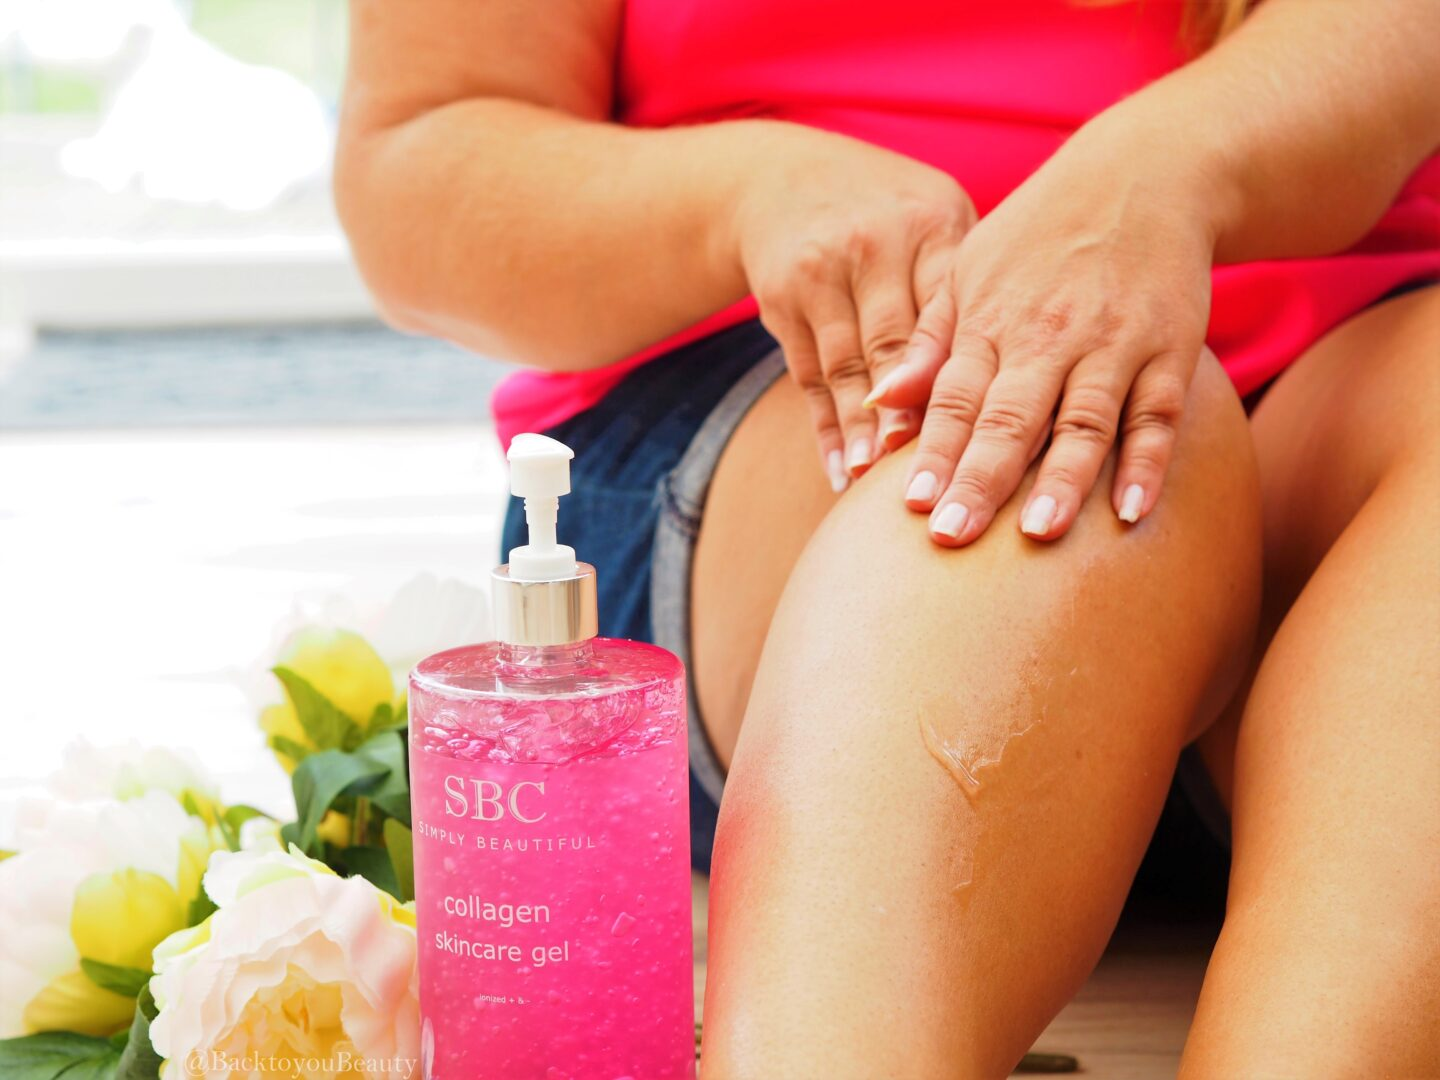 Applying SBC Collagen Skincare gel to my legs